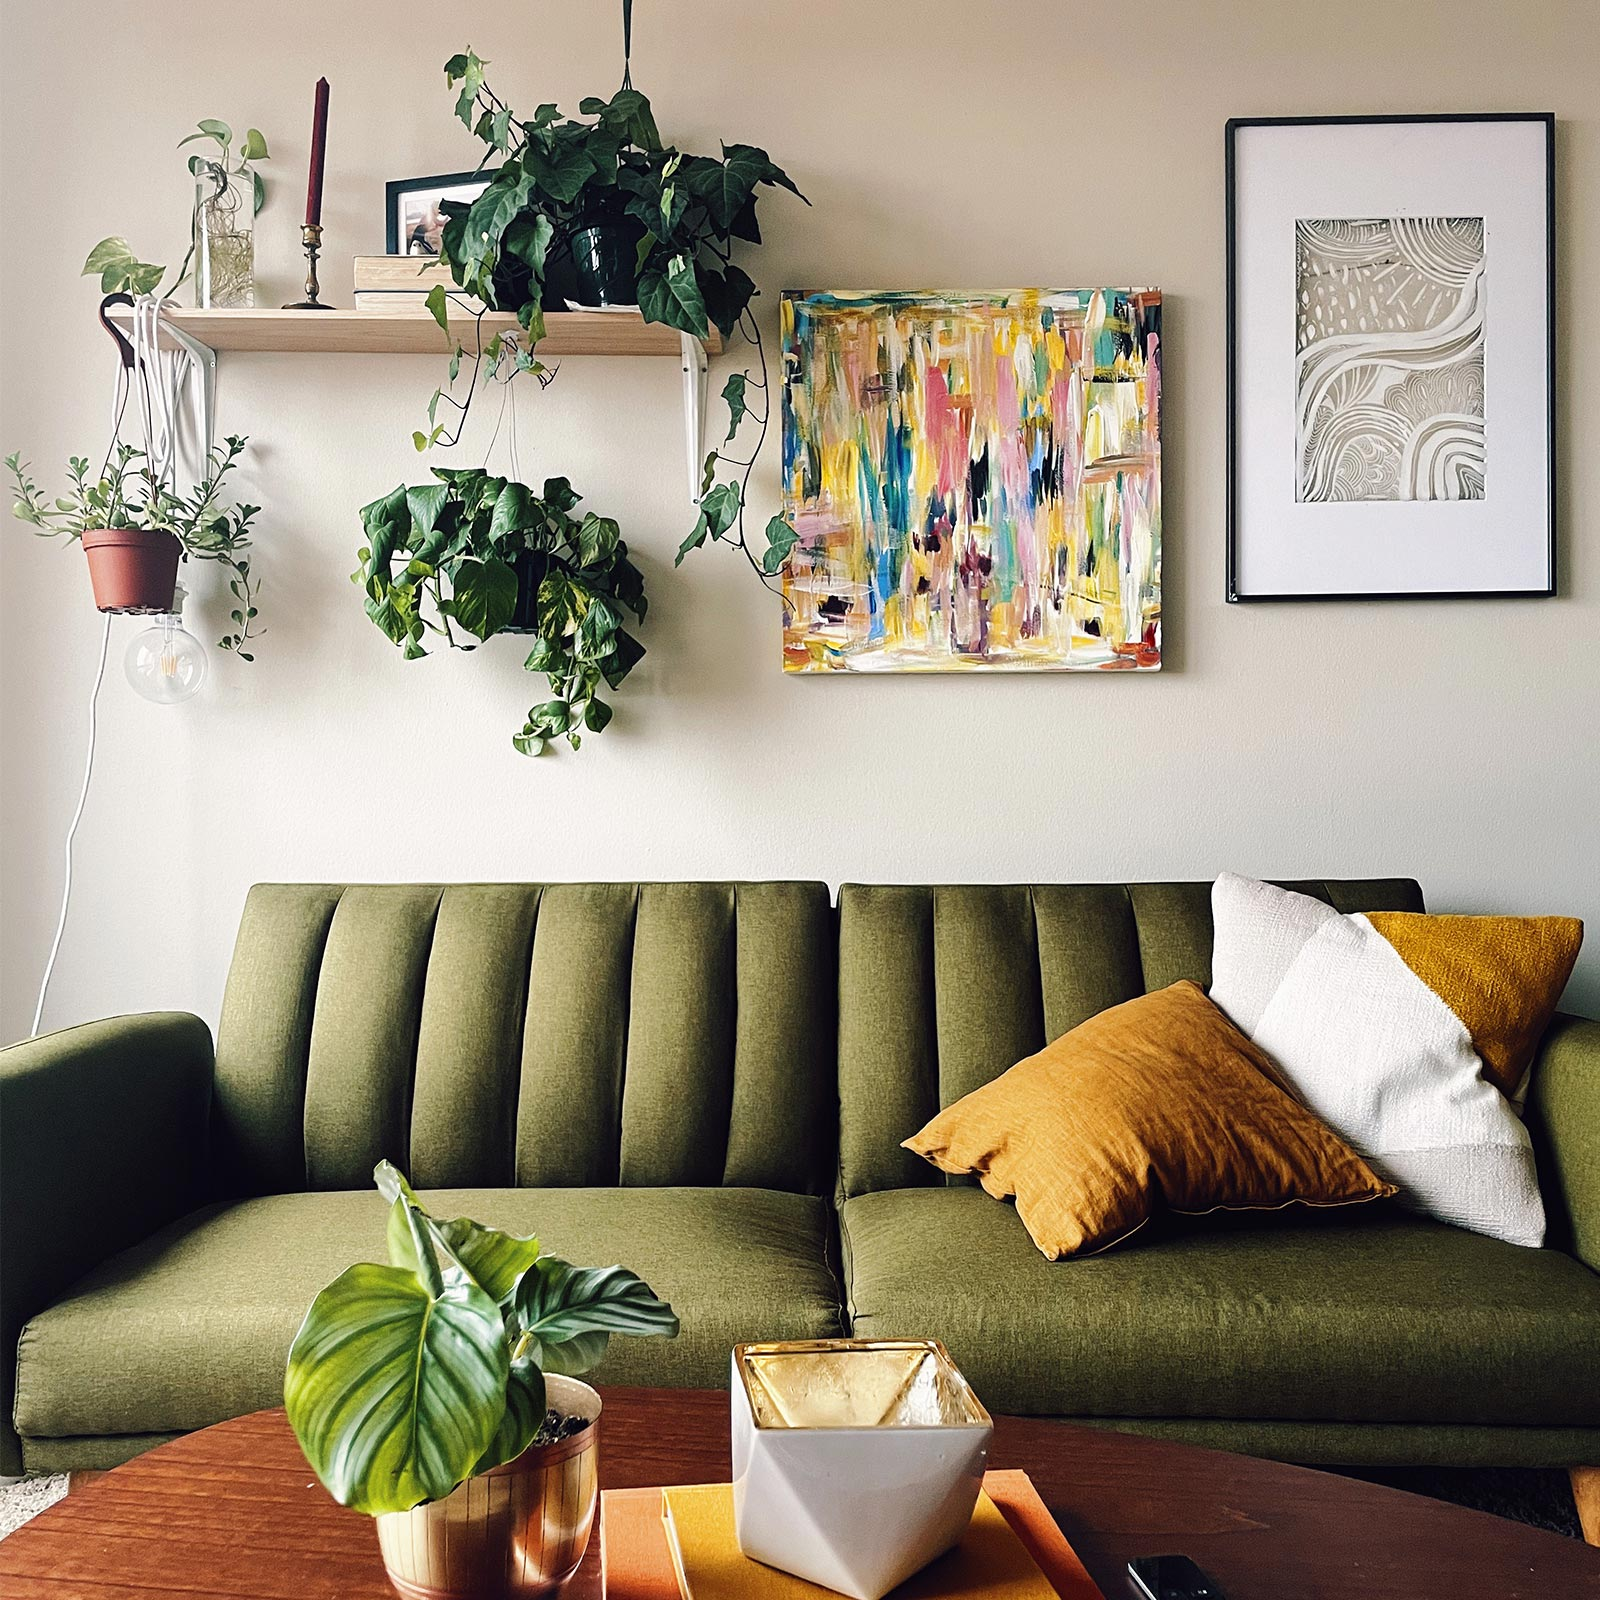 Stack of Artifact Uprising photo books on coffee table in front of mid-century modern olive green velvet couch